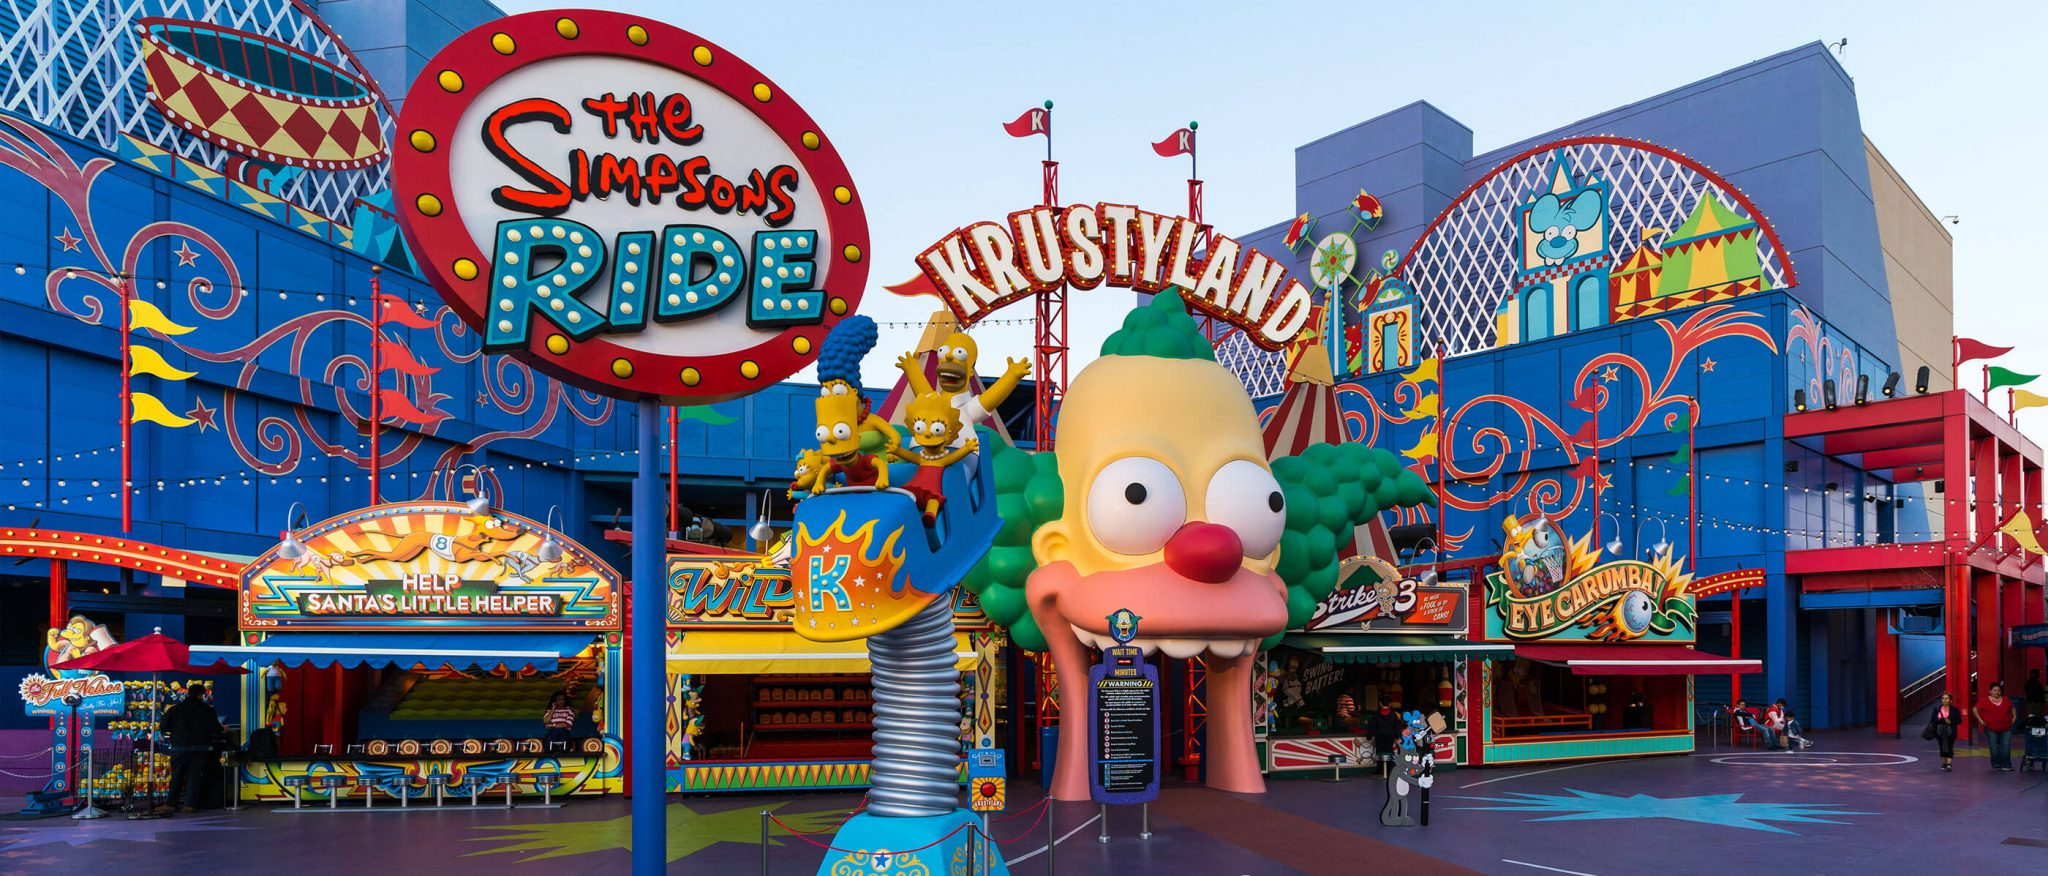 things-to-do-in-orlando-universal-simpsons